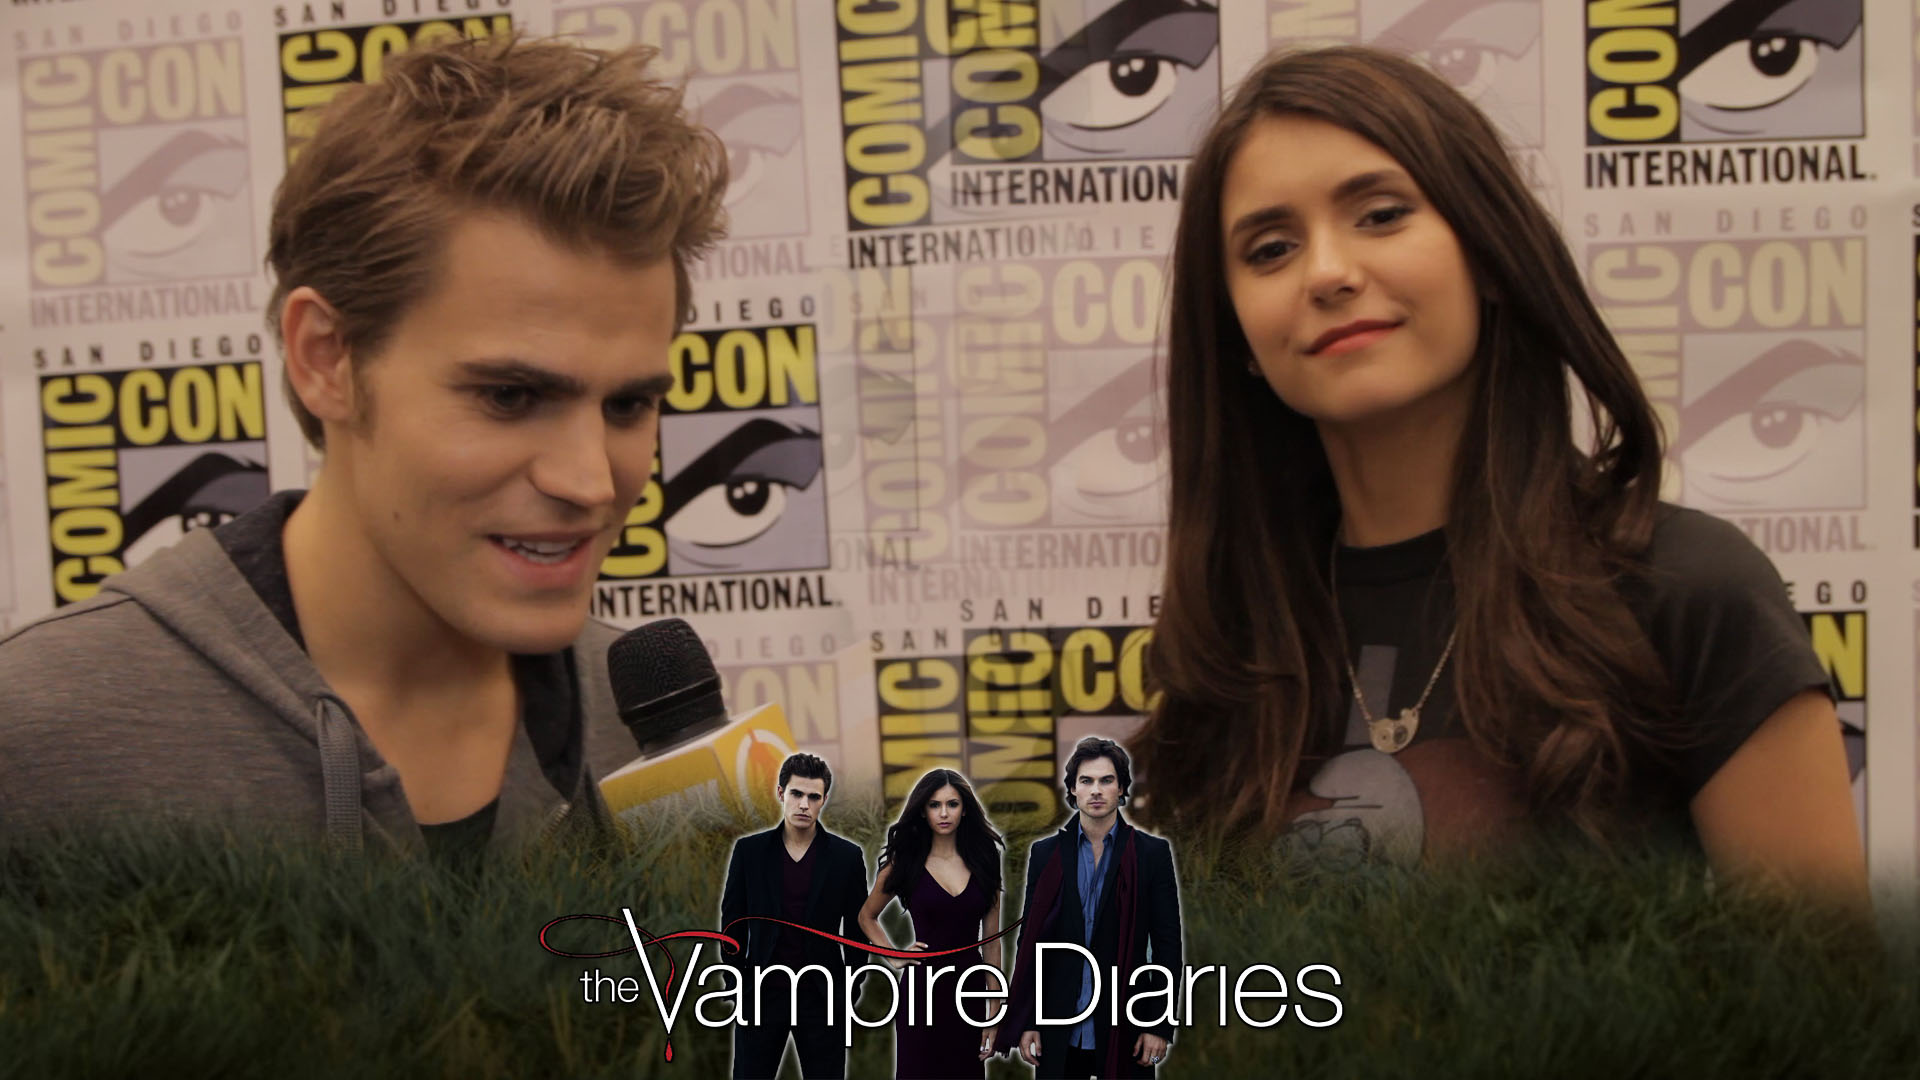 vampire diaries dating real life They may not have been given a chance to rekindle their past romance in the recently concluded supernatural drama series the vampire diaries (twd), but could paul wesley and nina dobrev be dating in real life.